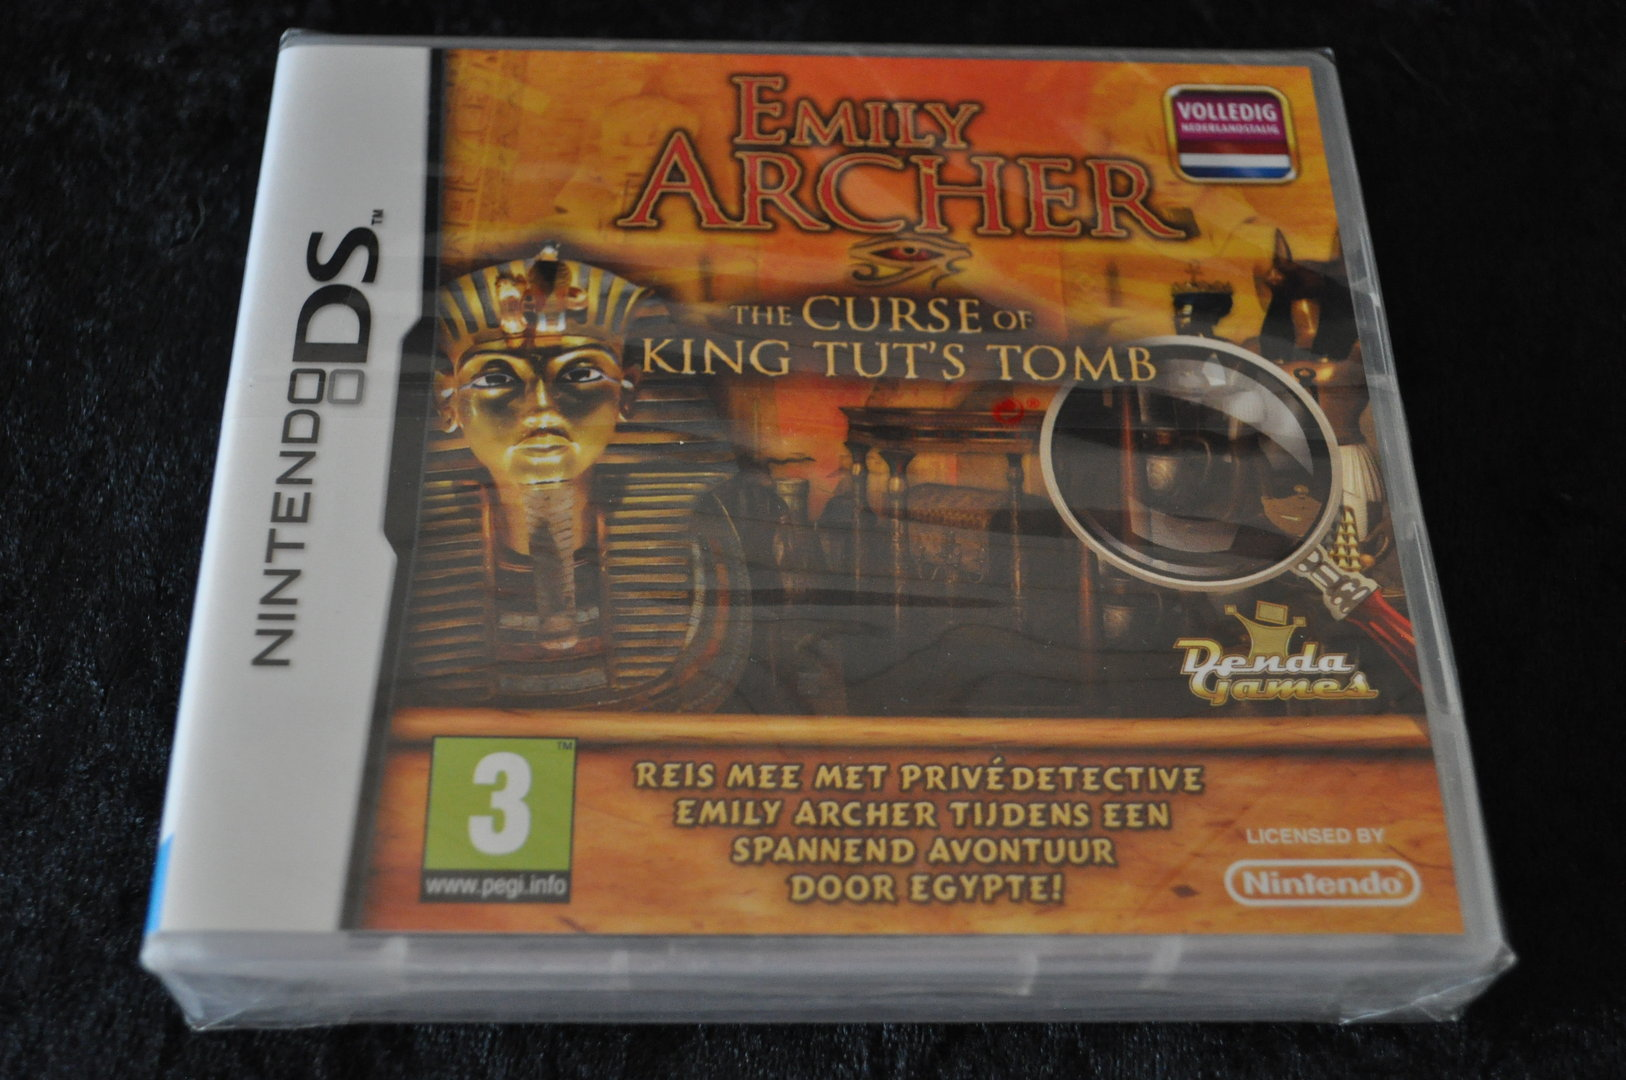 The Curse Of King Tuts Tomb Torrent: Nintendo DS Emily Archer The Curse Of King Tut's Tomb